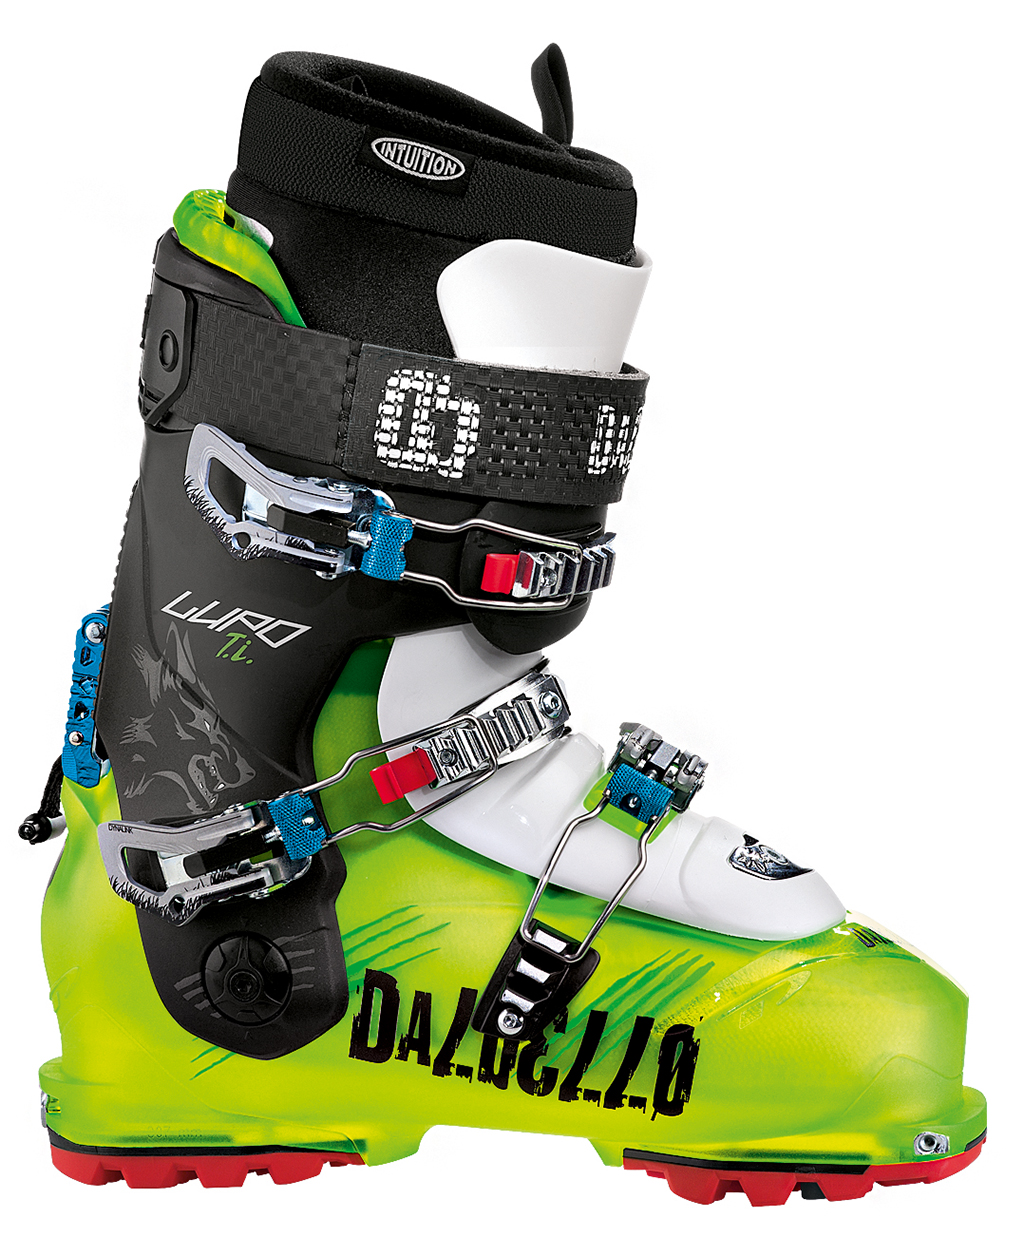 Ski boots DALBELLO Krypton 130 I.D. UNI Dalbello Wear Resistance Clearance Official Free Shipping Latest Collections Sale Sneakernews UCVqN3